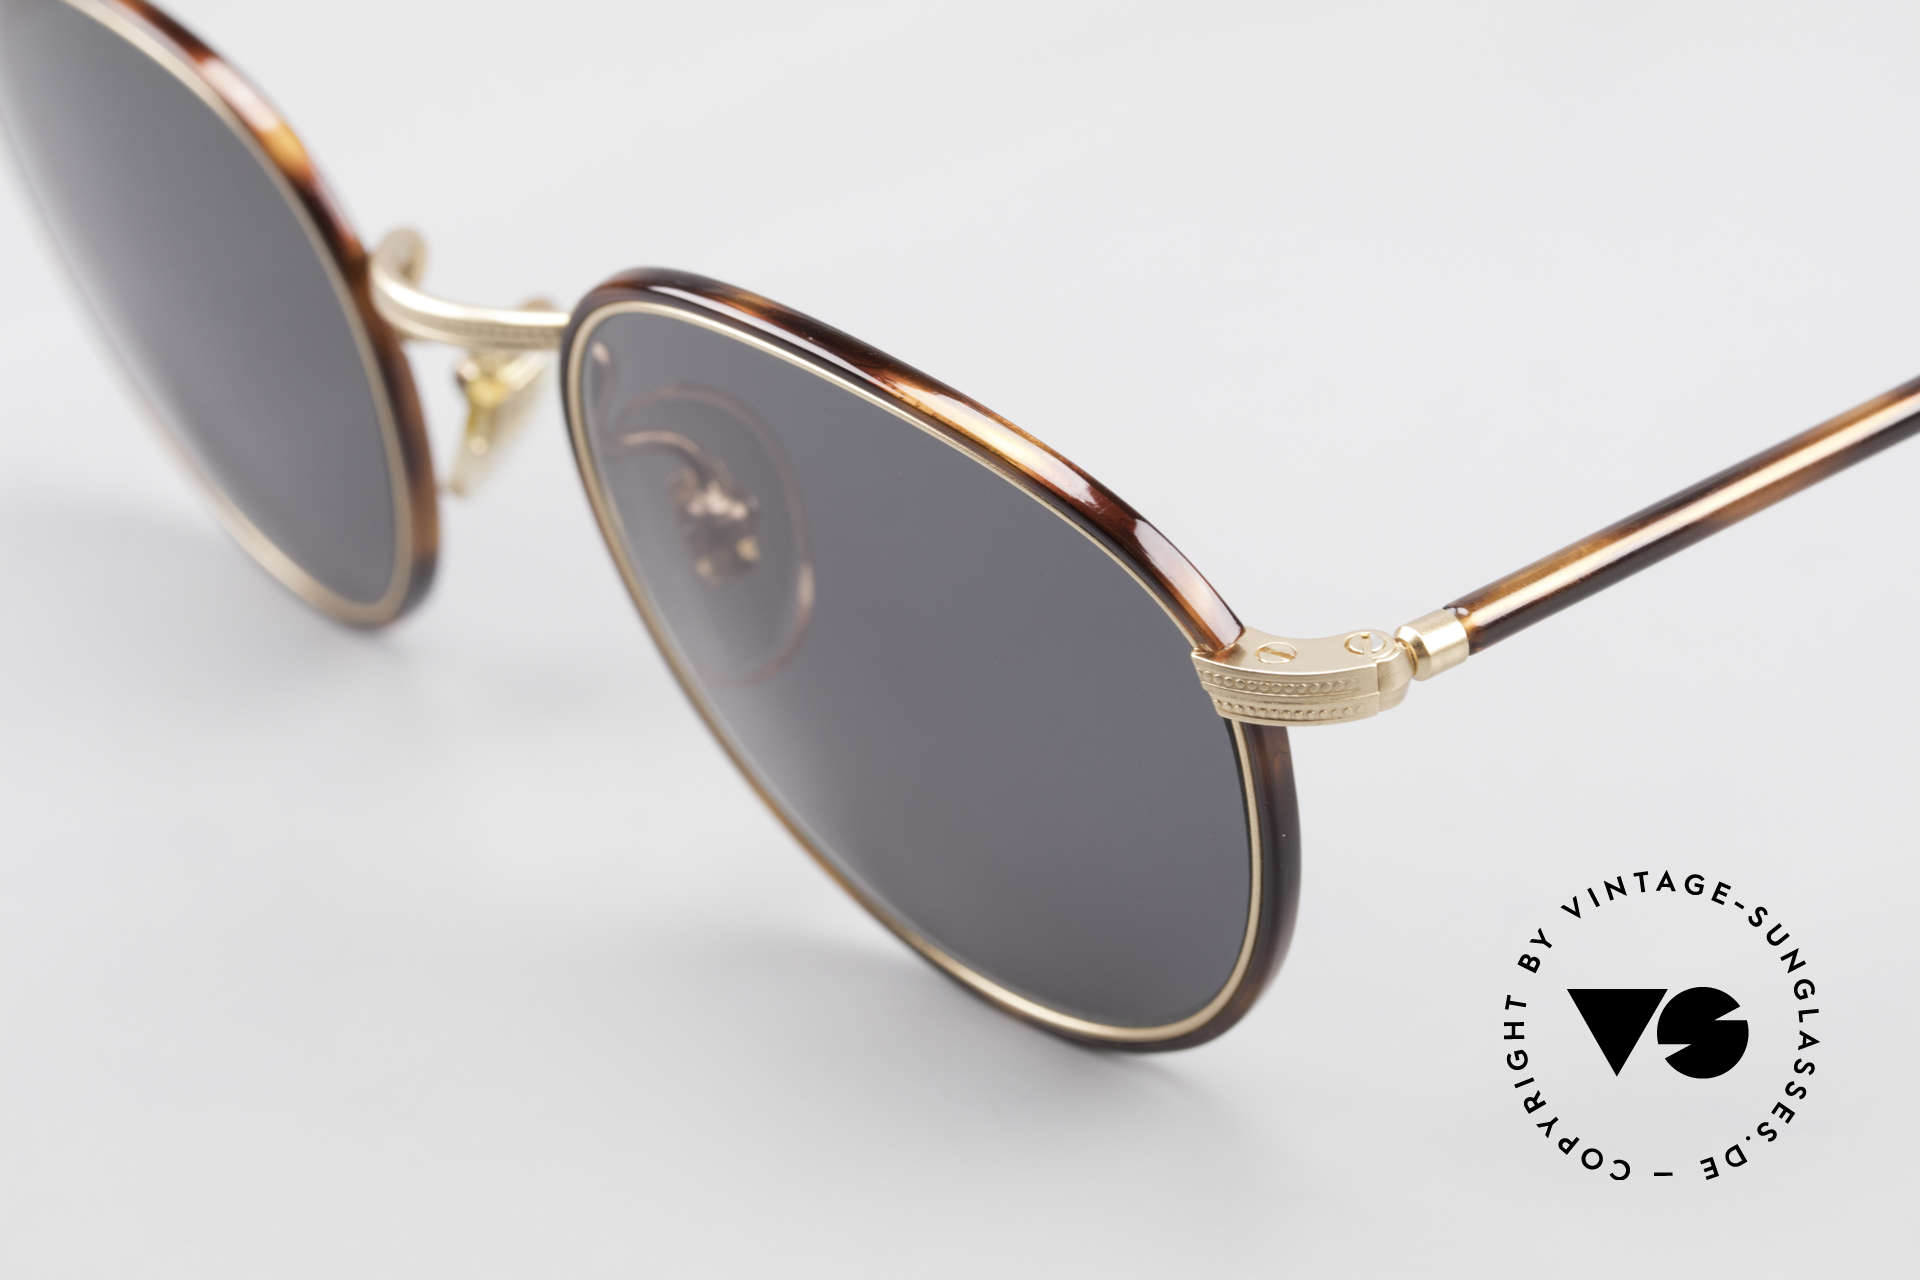 Cutler And Gross 0352 Panto Vintage Sunglasses 90s, very elegant combination of materials and classic colors, Made for Men and Women